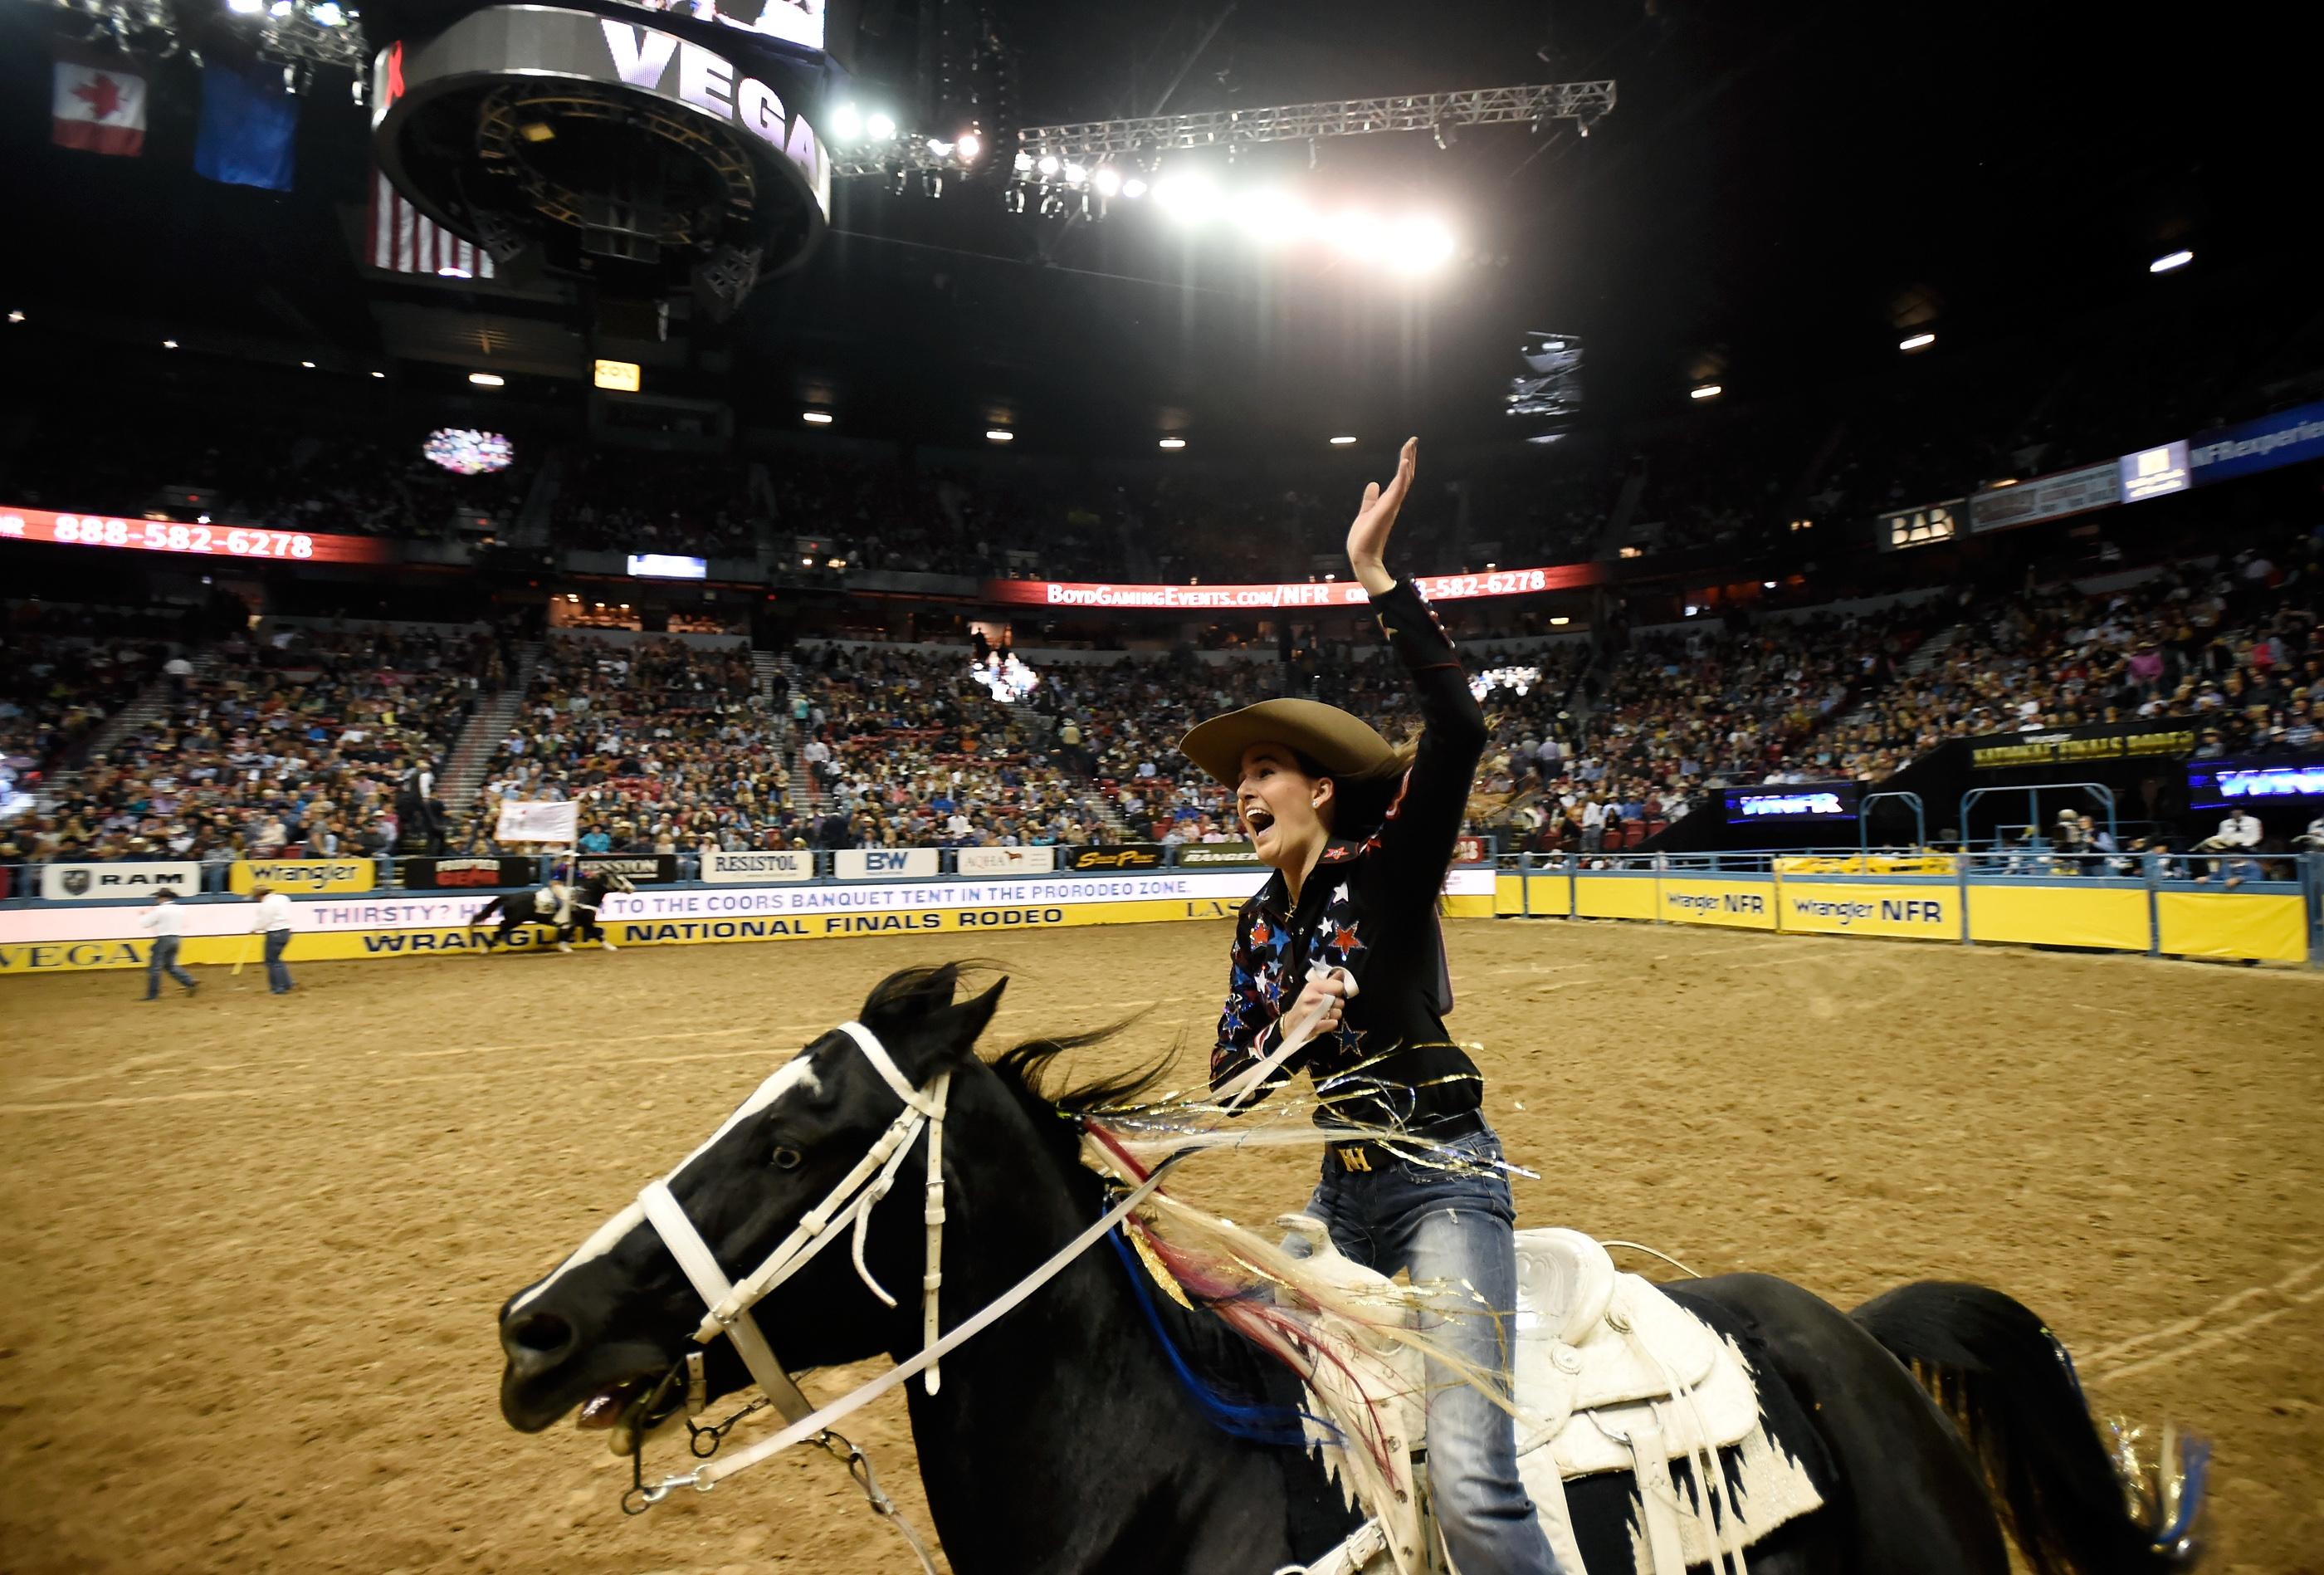 Tillar Murray from Fort Worth, Texas, acknowledges the crowd after competing in barrel racing during the seventh go-round of the National Finals Rodeo Wednesday, Dec. 13, 2017, in Las Vegas. CREDIT: David Becker/Las Vegas News Bureau